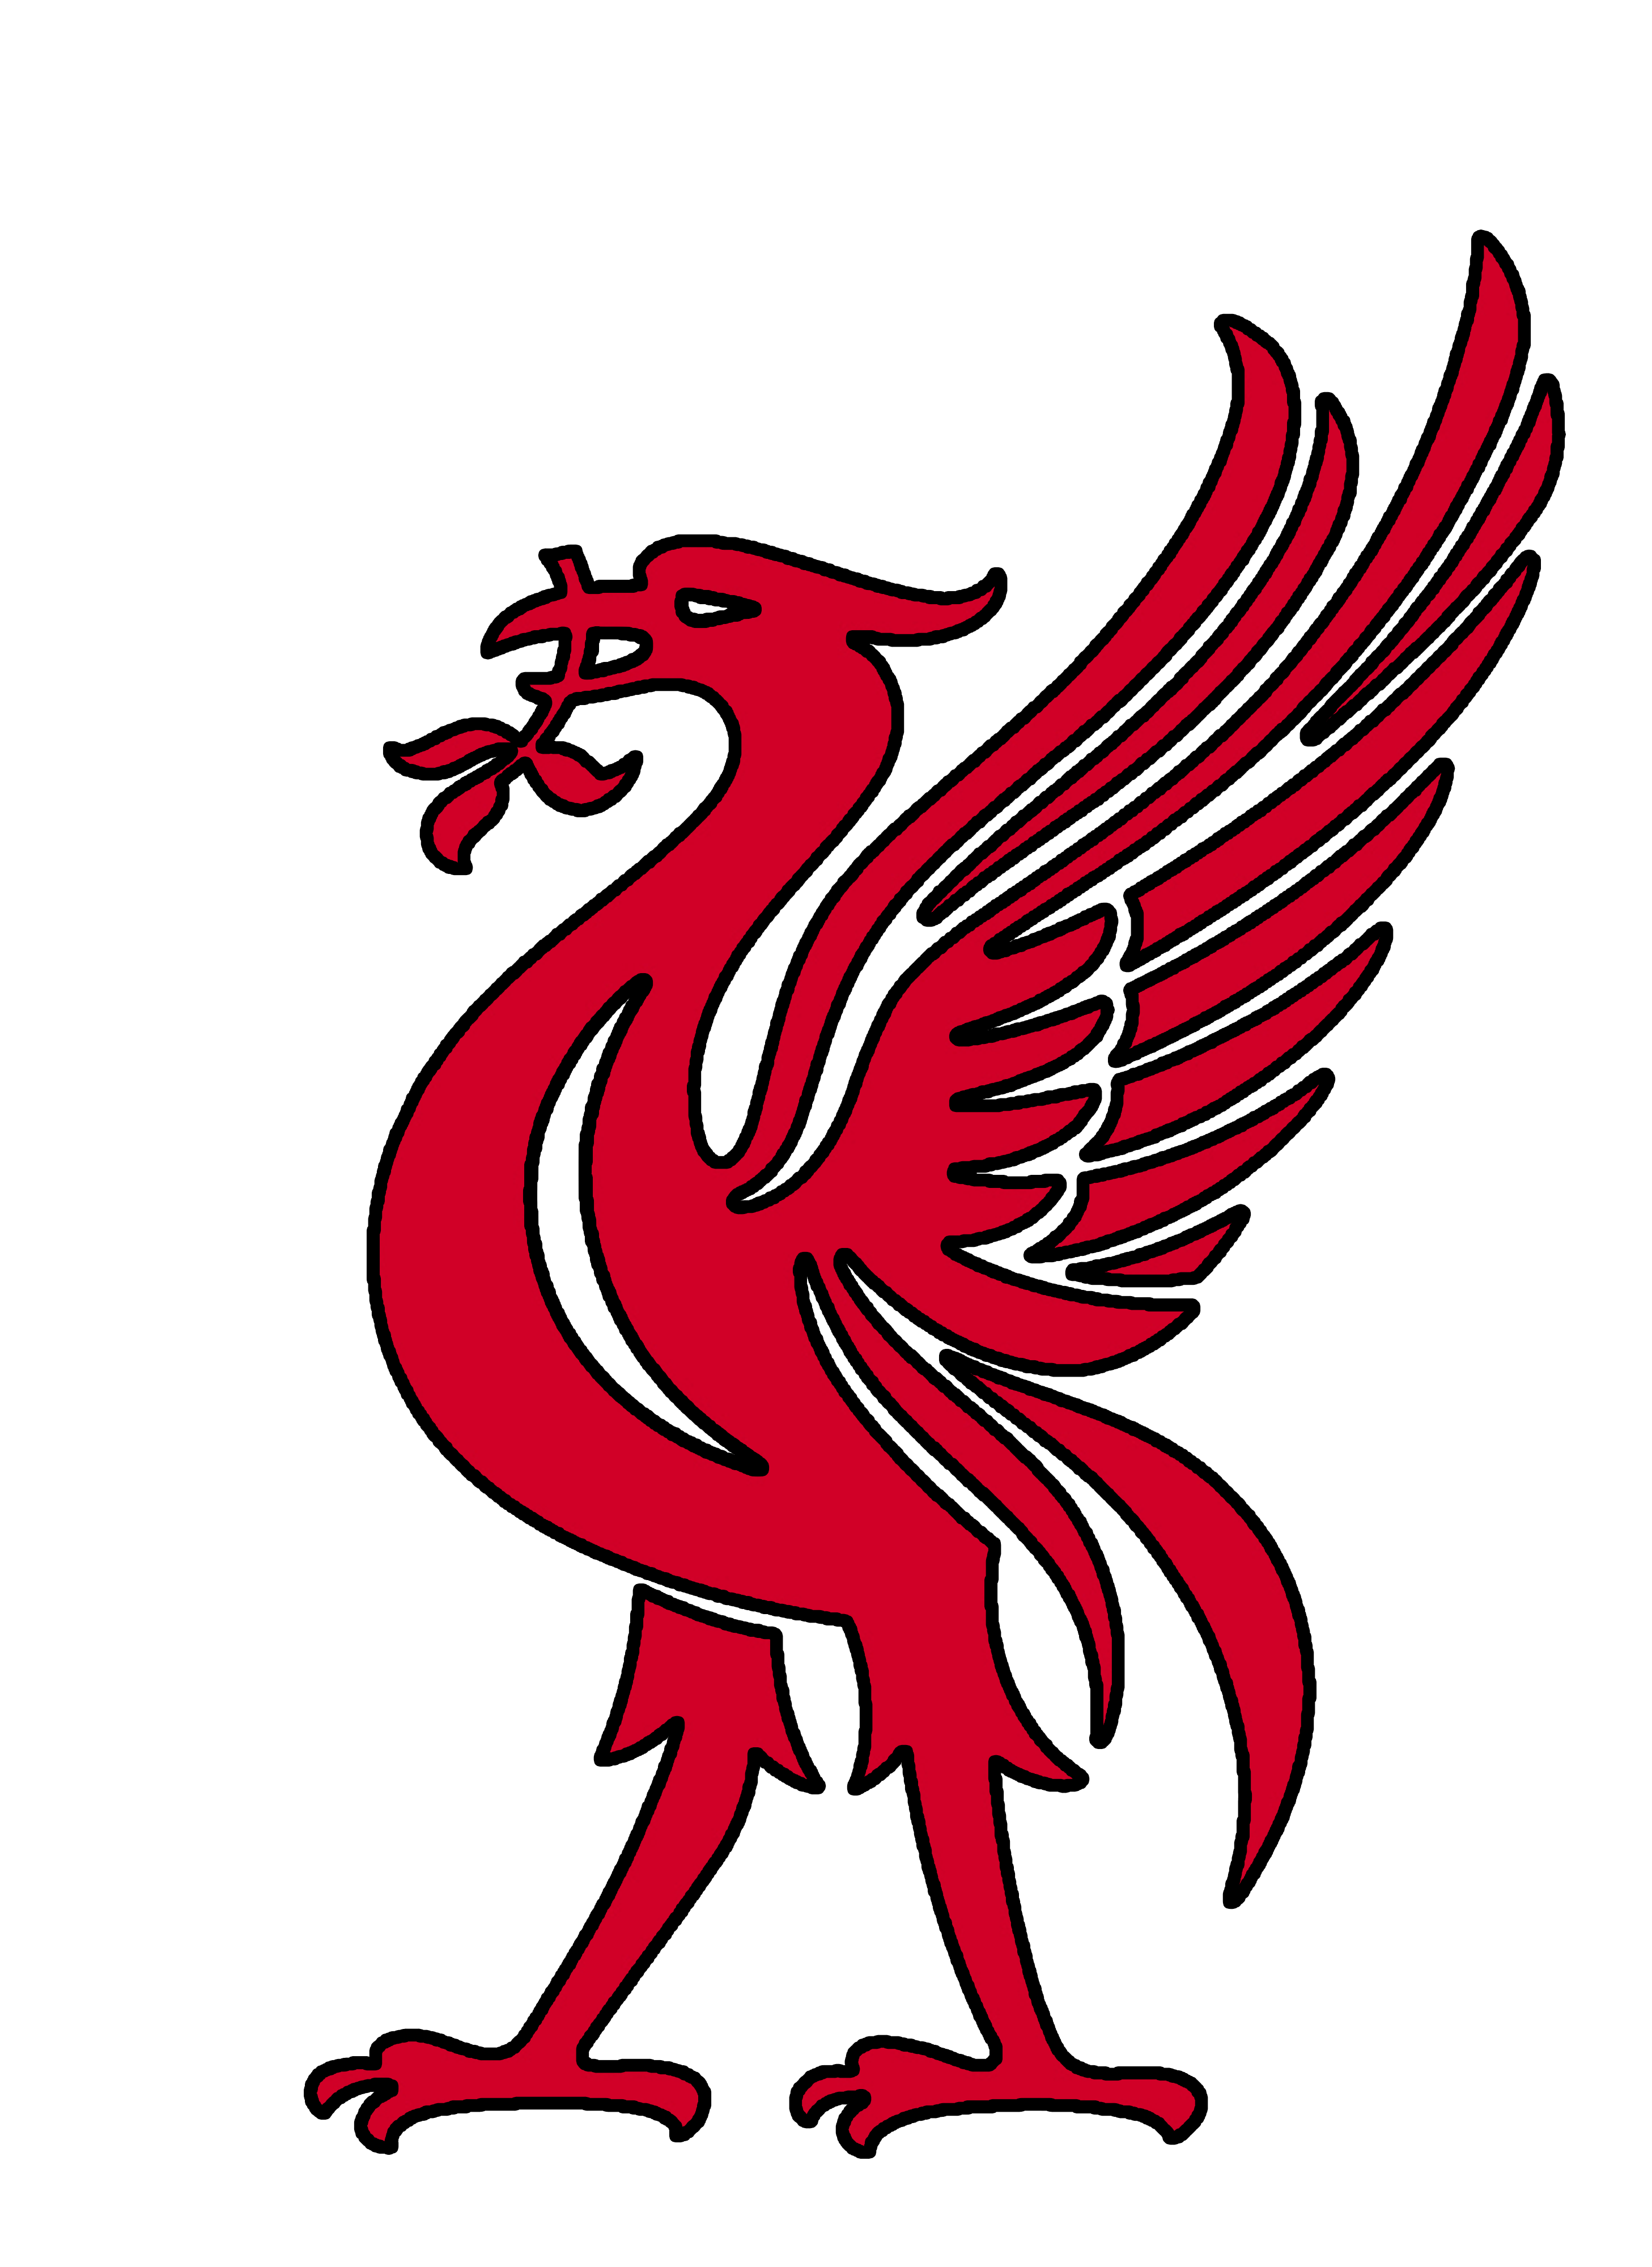 1000+ images about Liverpool FC on Pinterest | Hong kong, Posts and Smart women